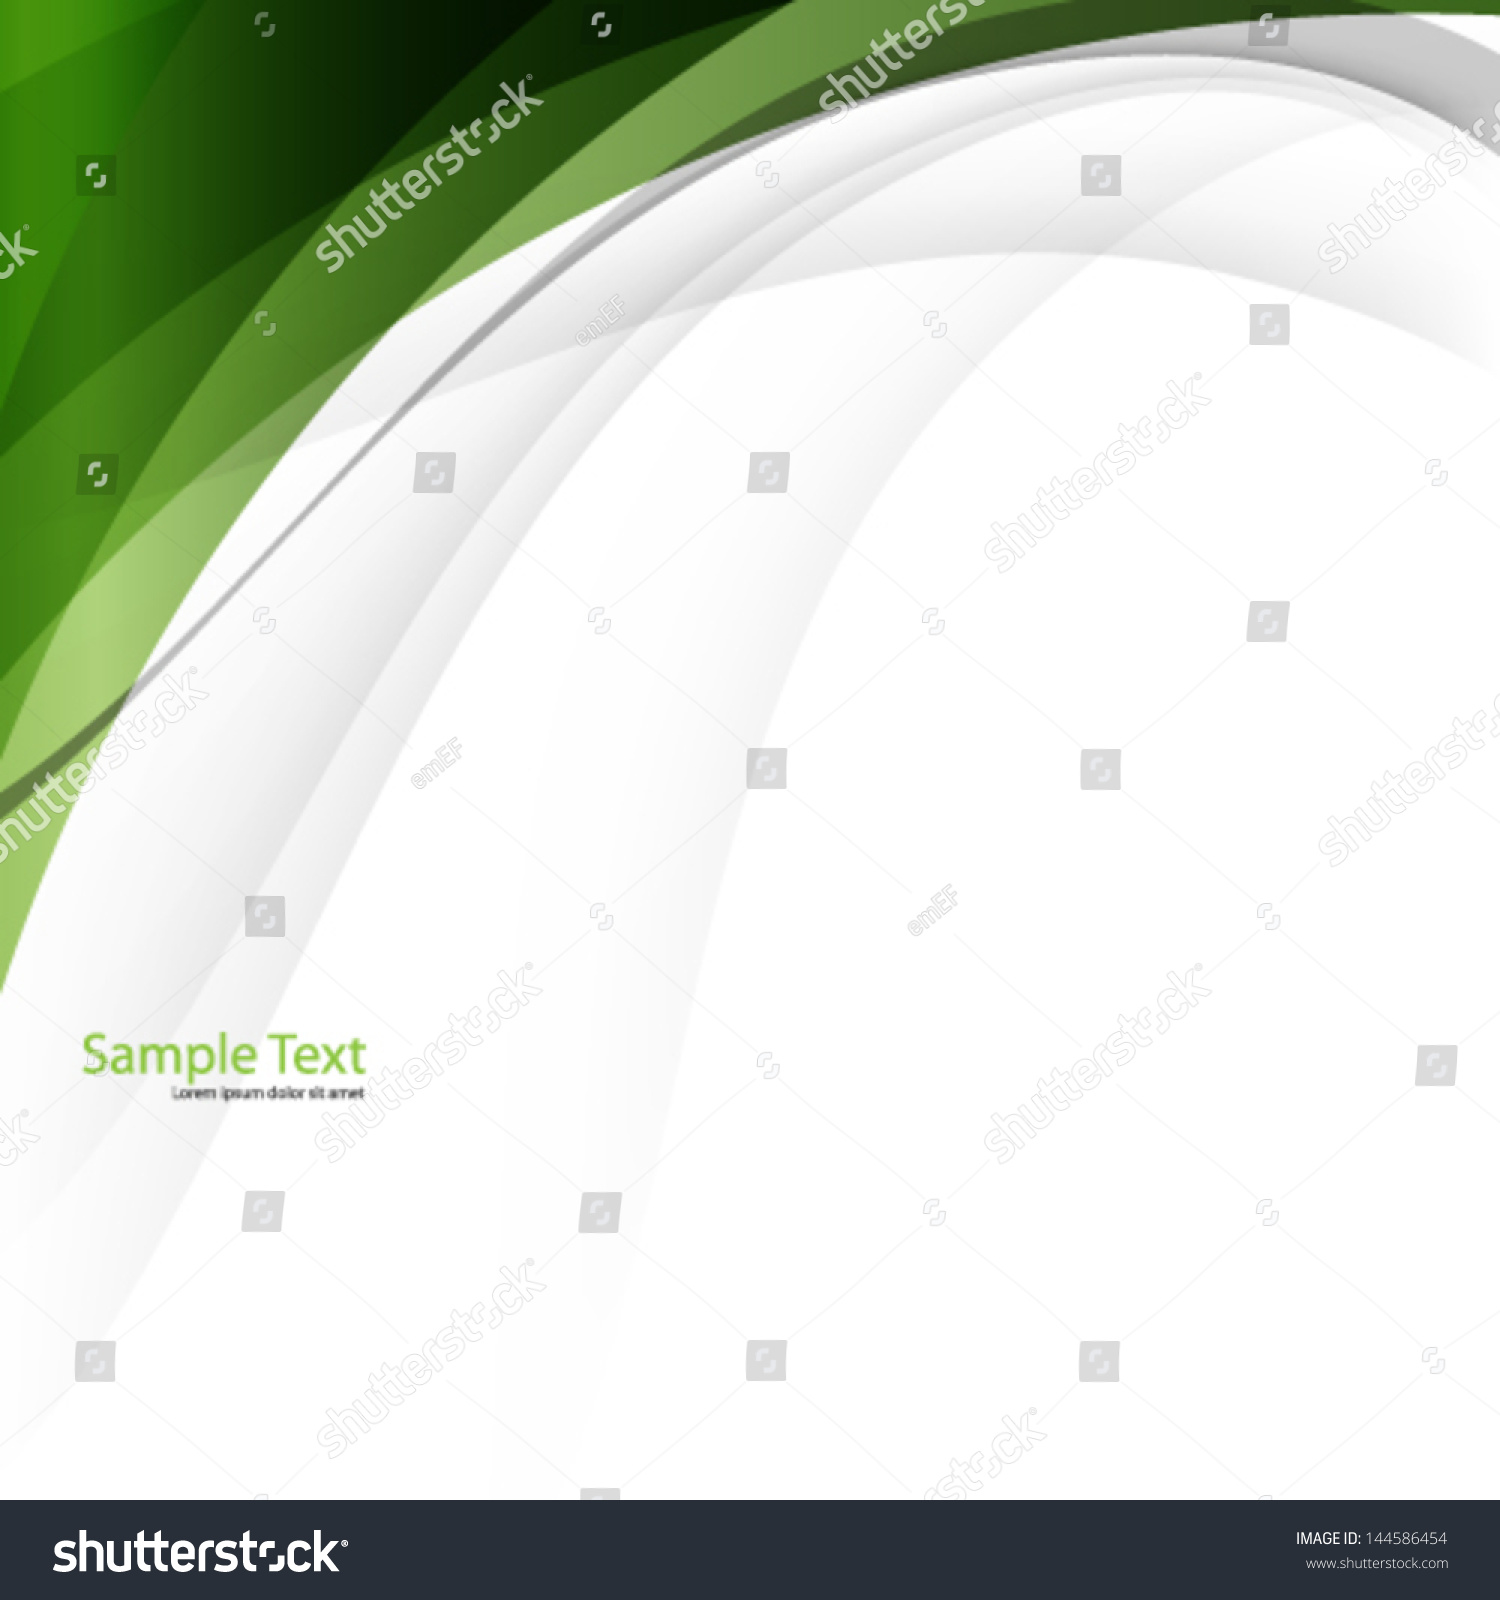 Drawing Smooth Curved Lines In Photo : Smooth curve lines background stock vector